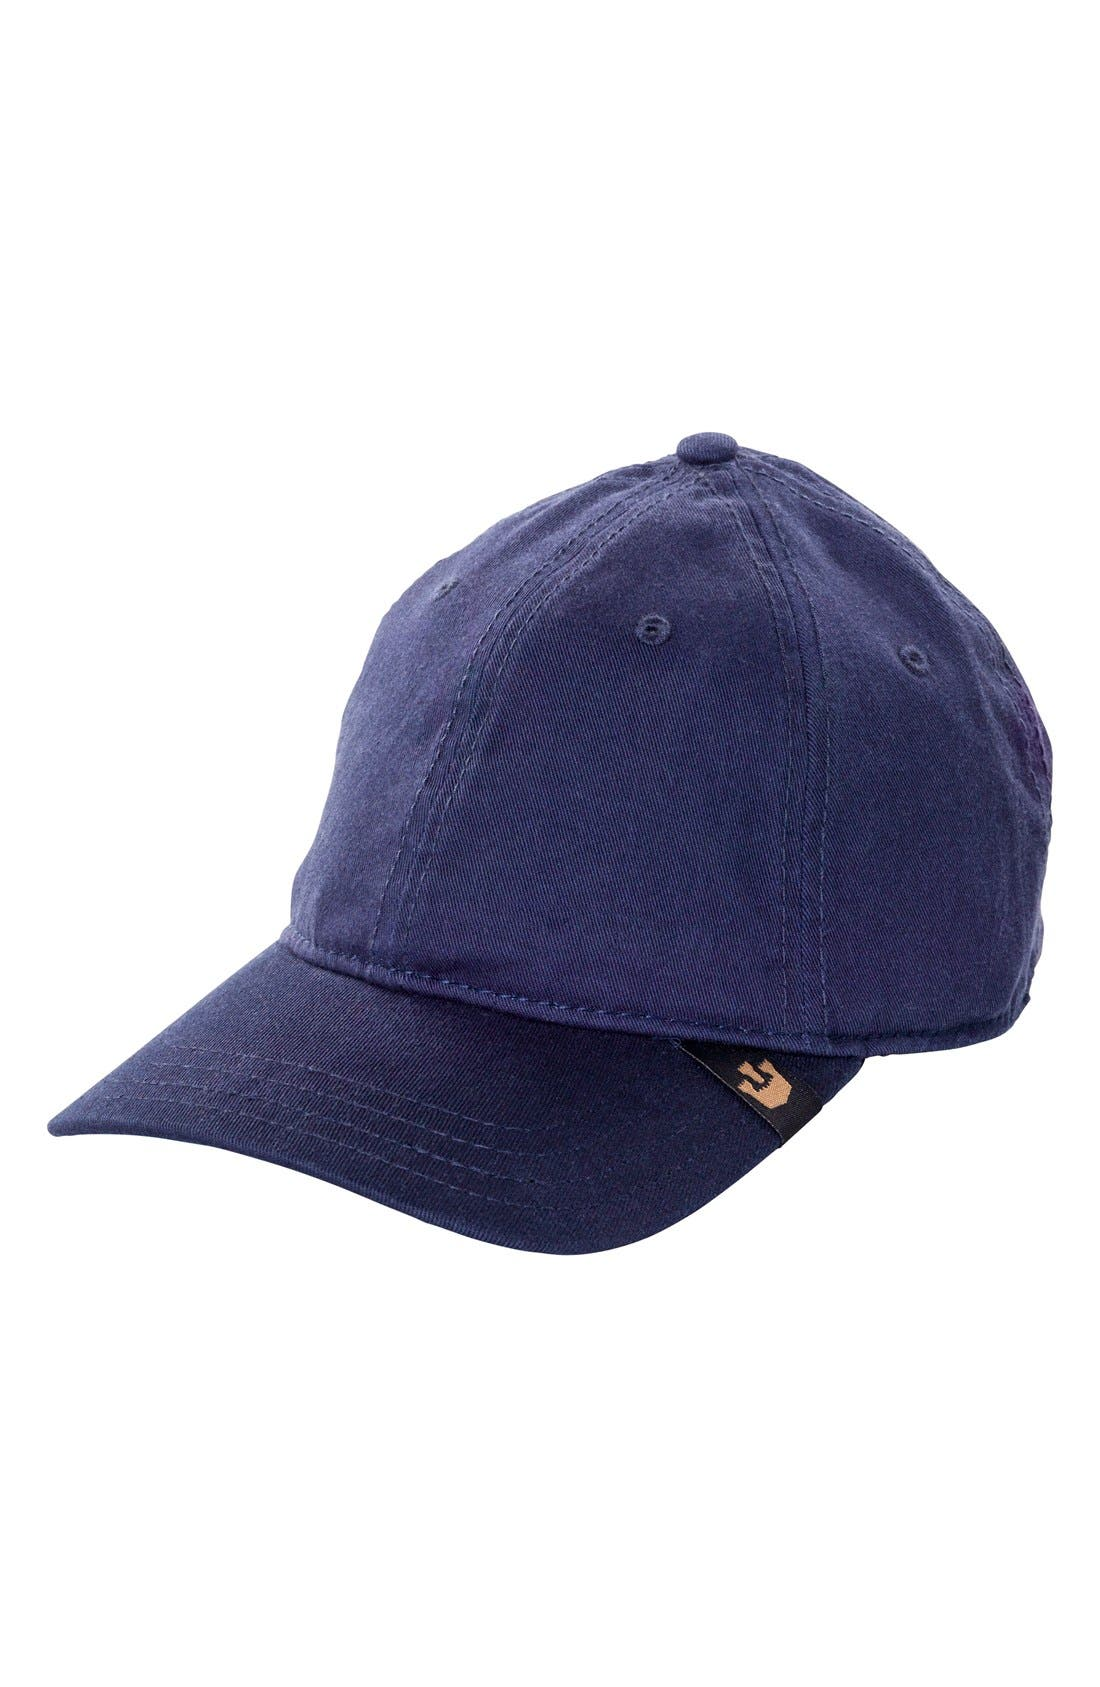 GOORIN BROTHERS 'Slayer' Baseball Cap